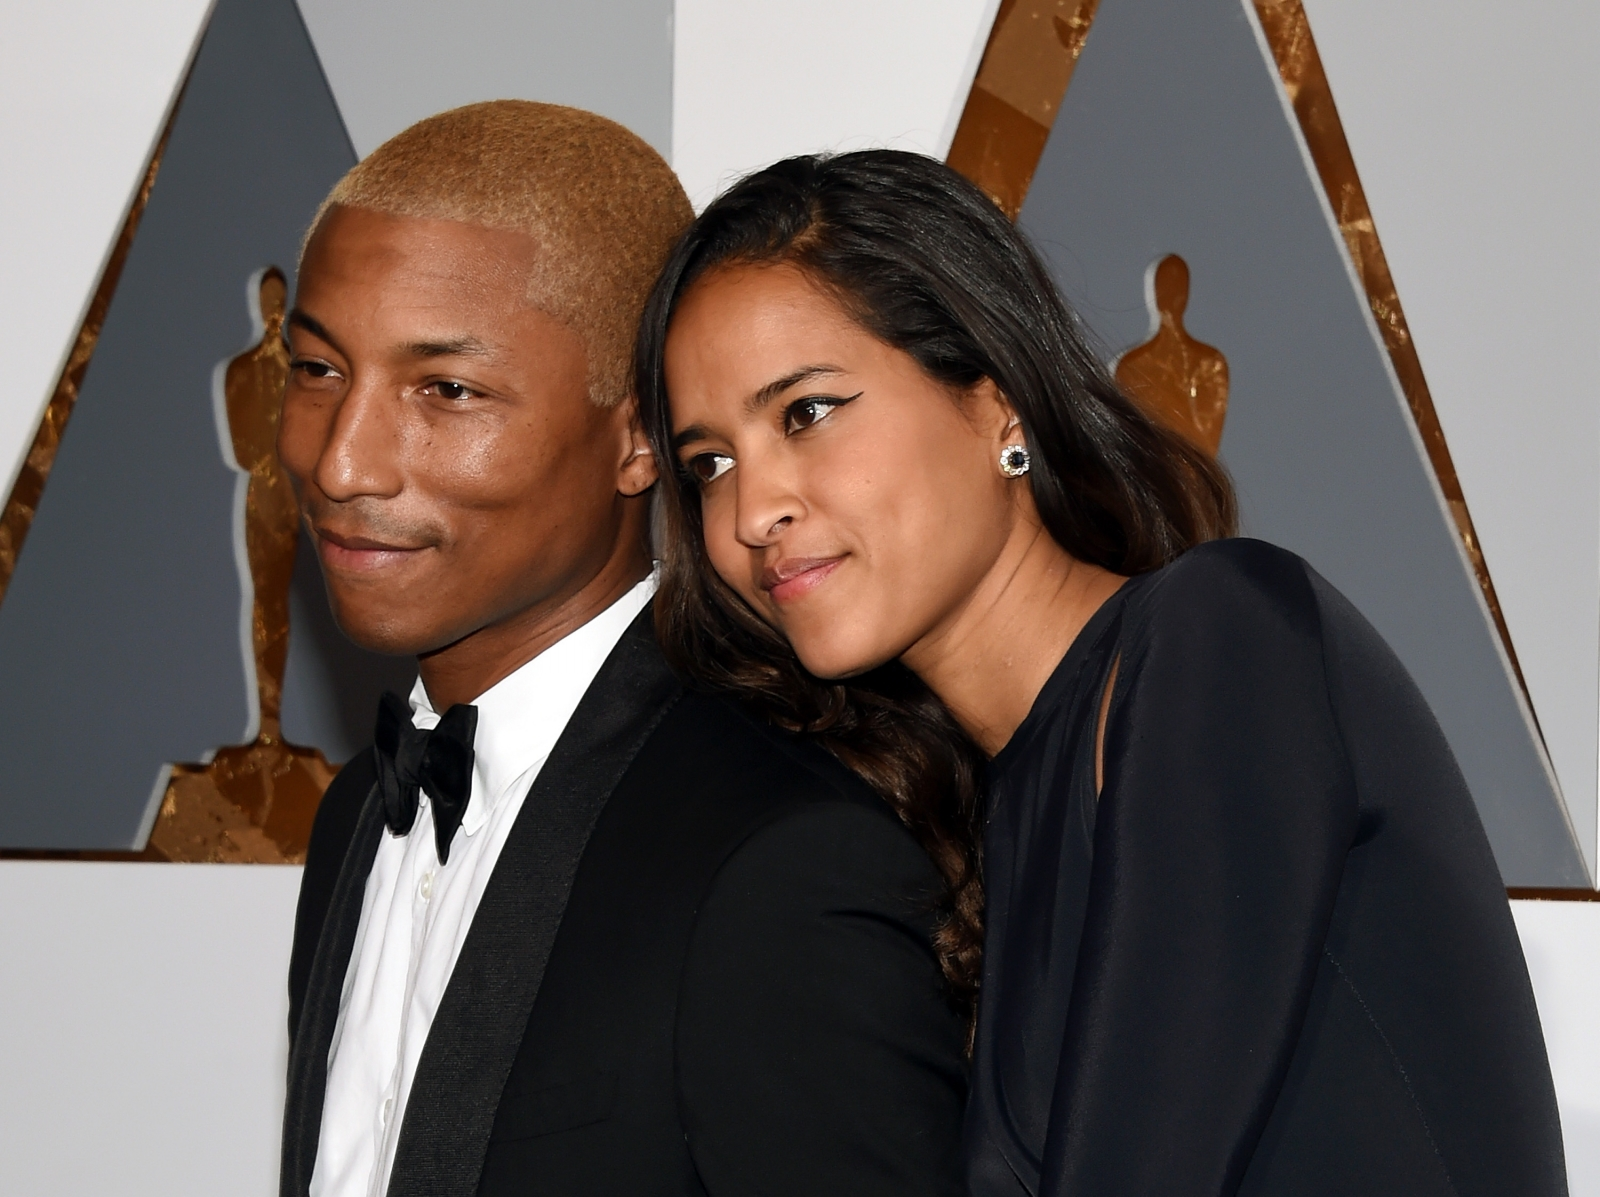 Pharrell Williams Becomes A Father To Triplets After Wife Helen